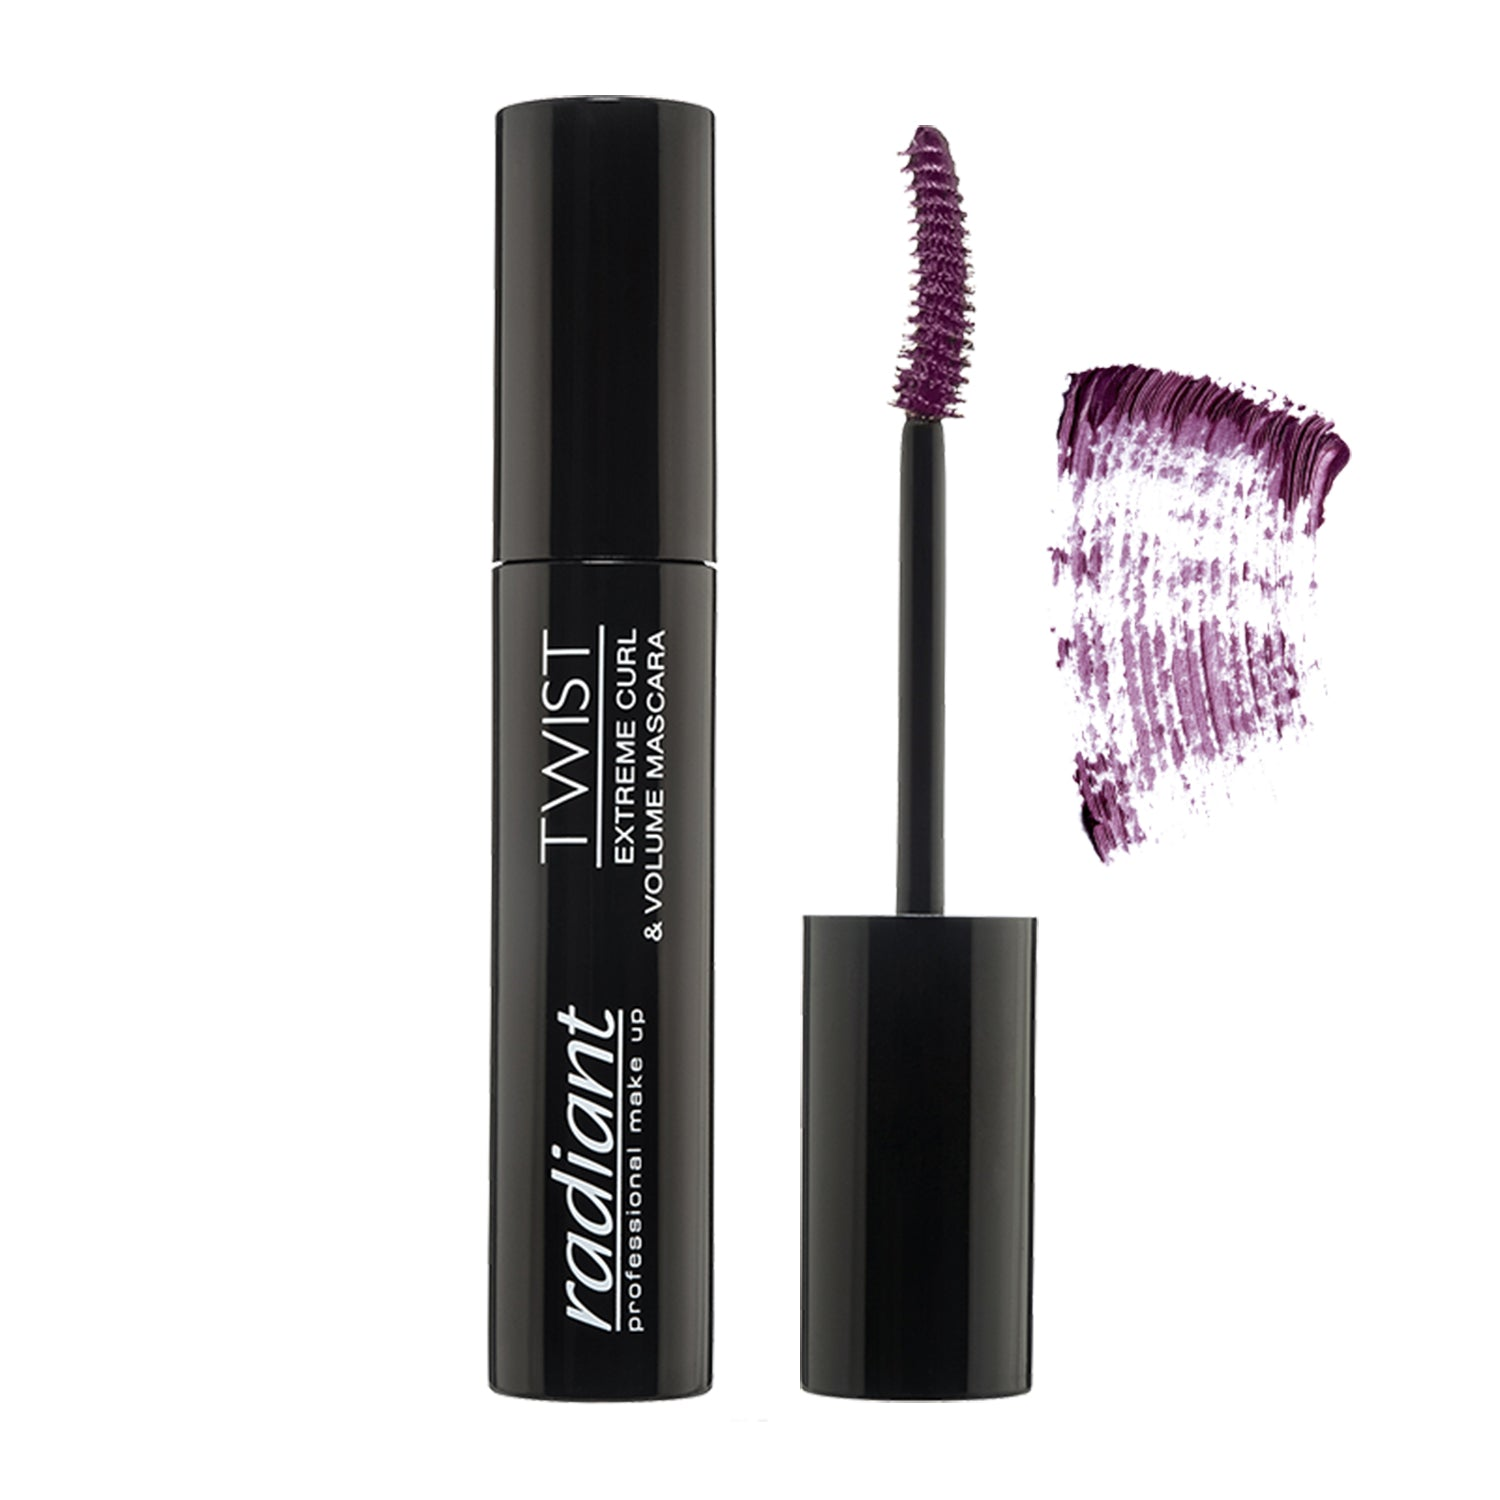 Twist Extreme Curl & Volume Mascara